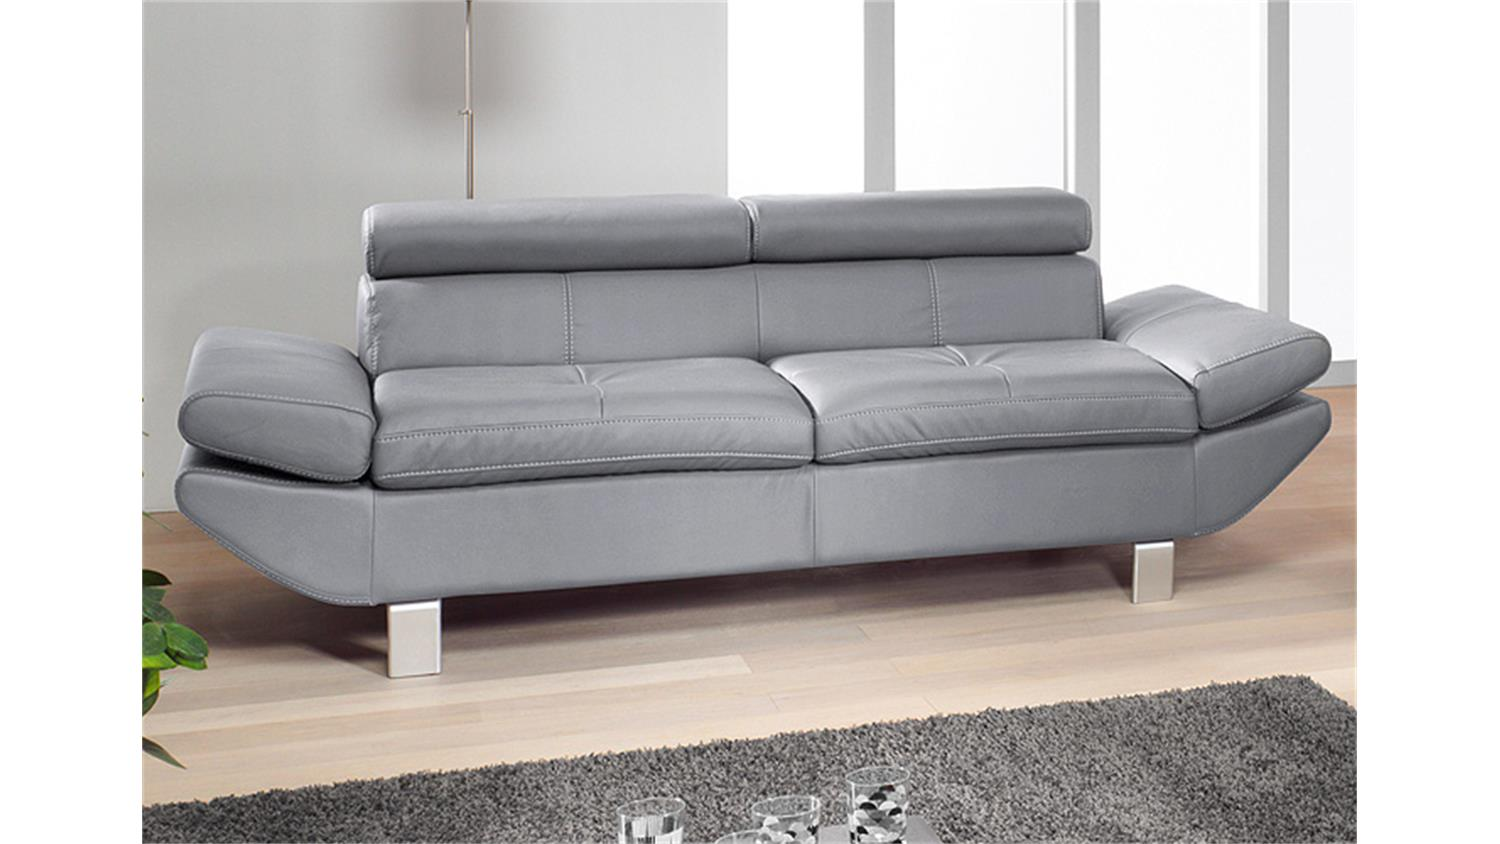 3er Sofa 3 Er Sofa Carrier Lederlook Grau 223 Cm